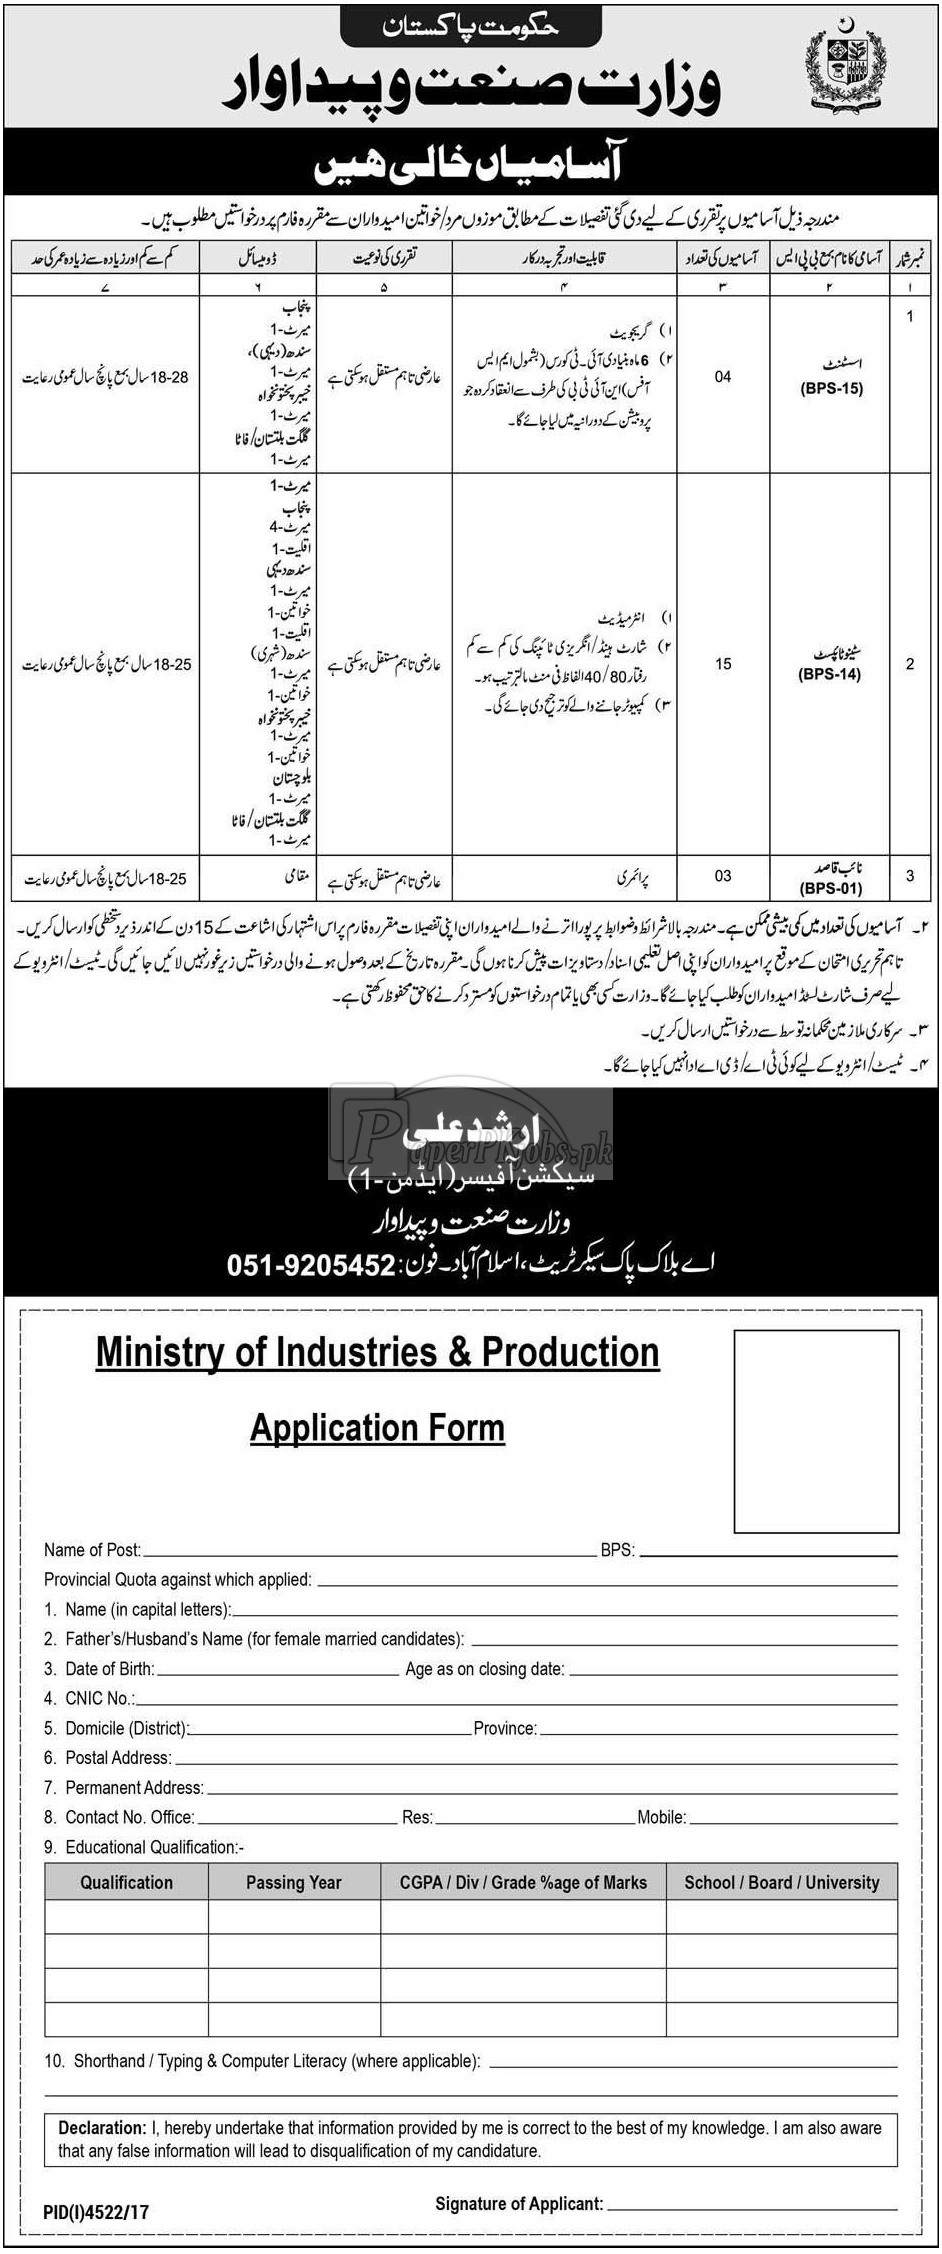 Ministry of Industries & Production Jobs 2018